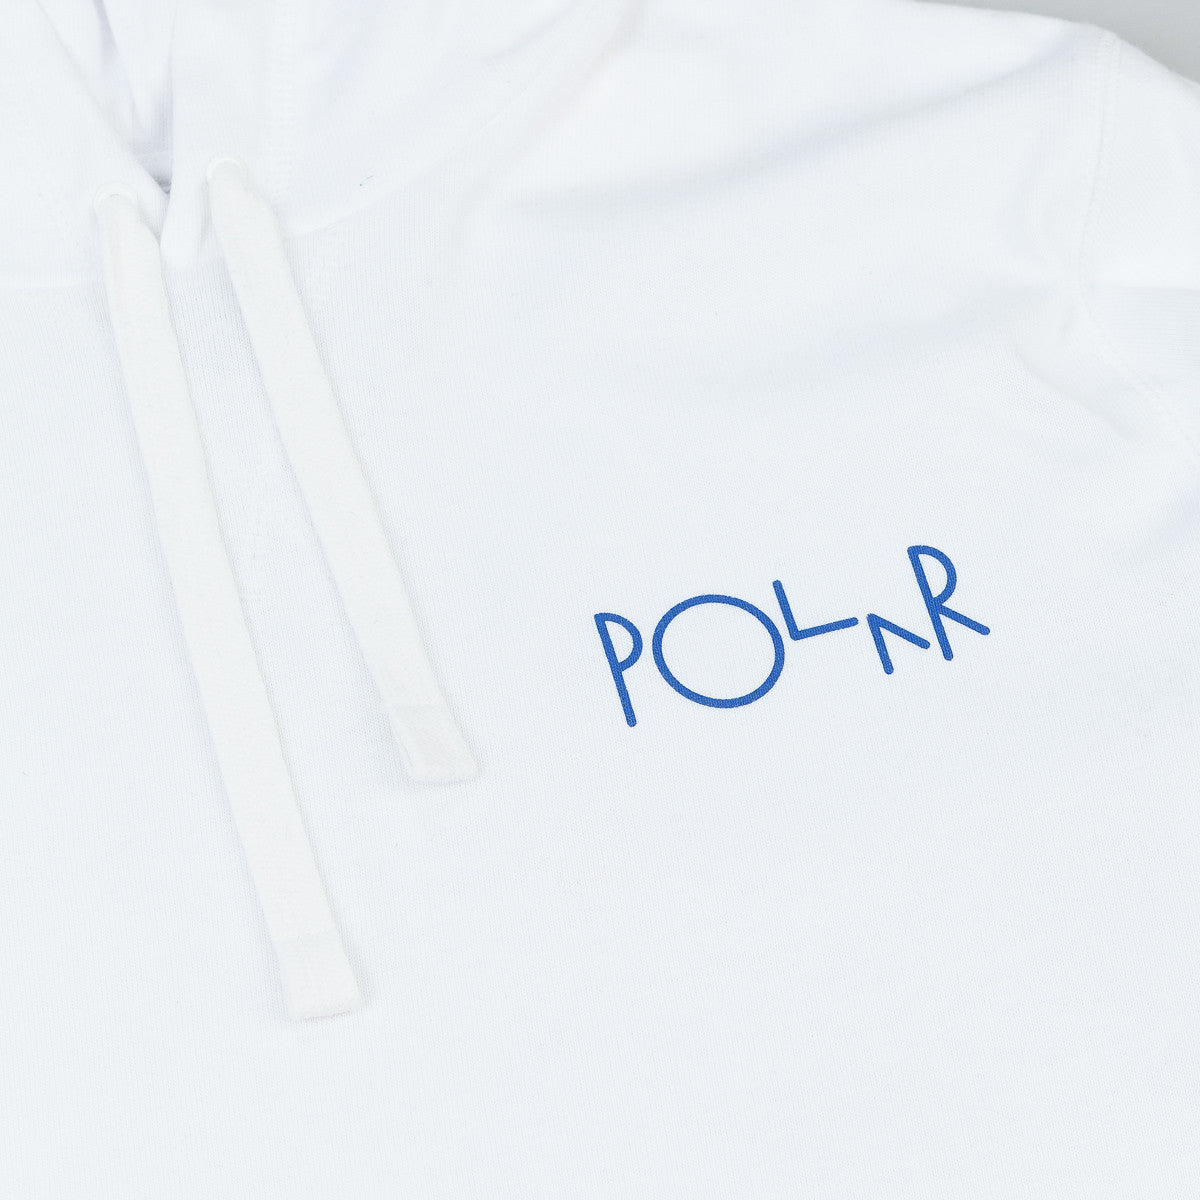 Polar Patch Hooded Sweatshirt - White / Navy